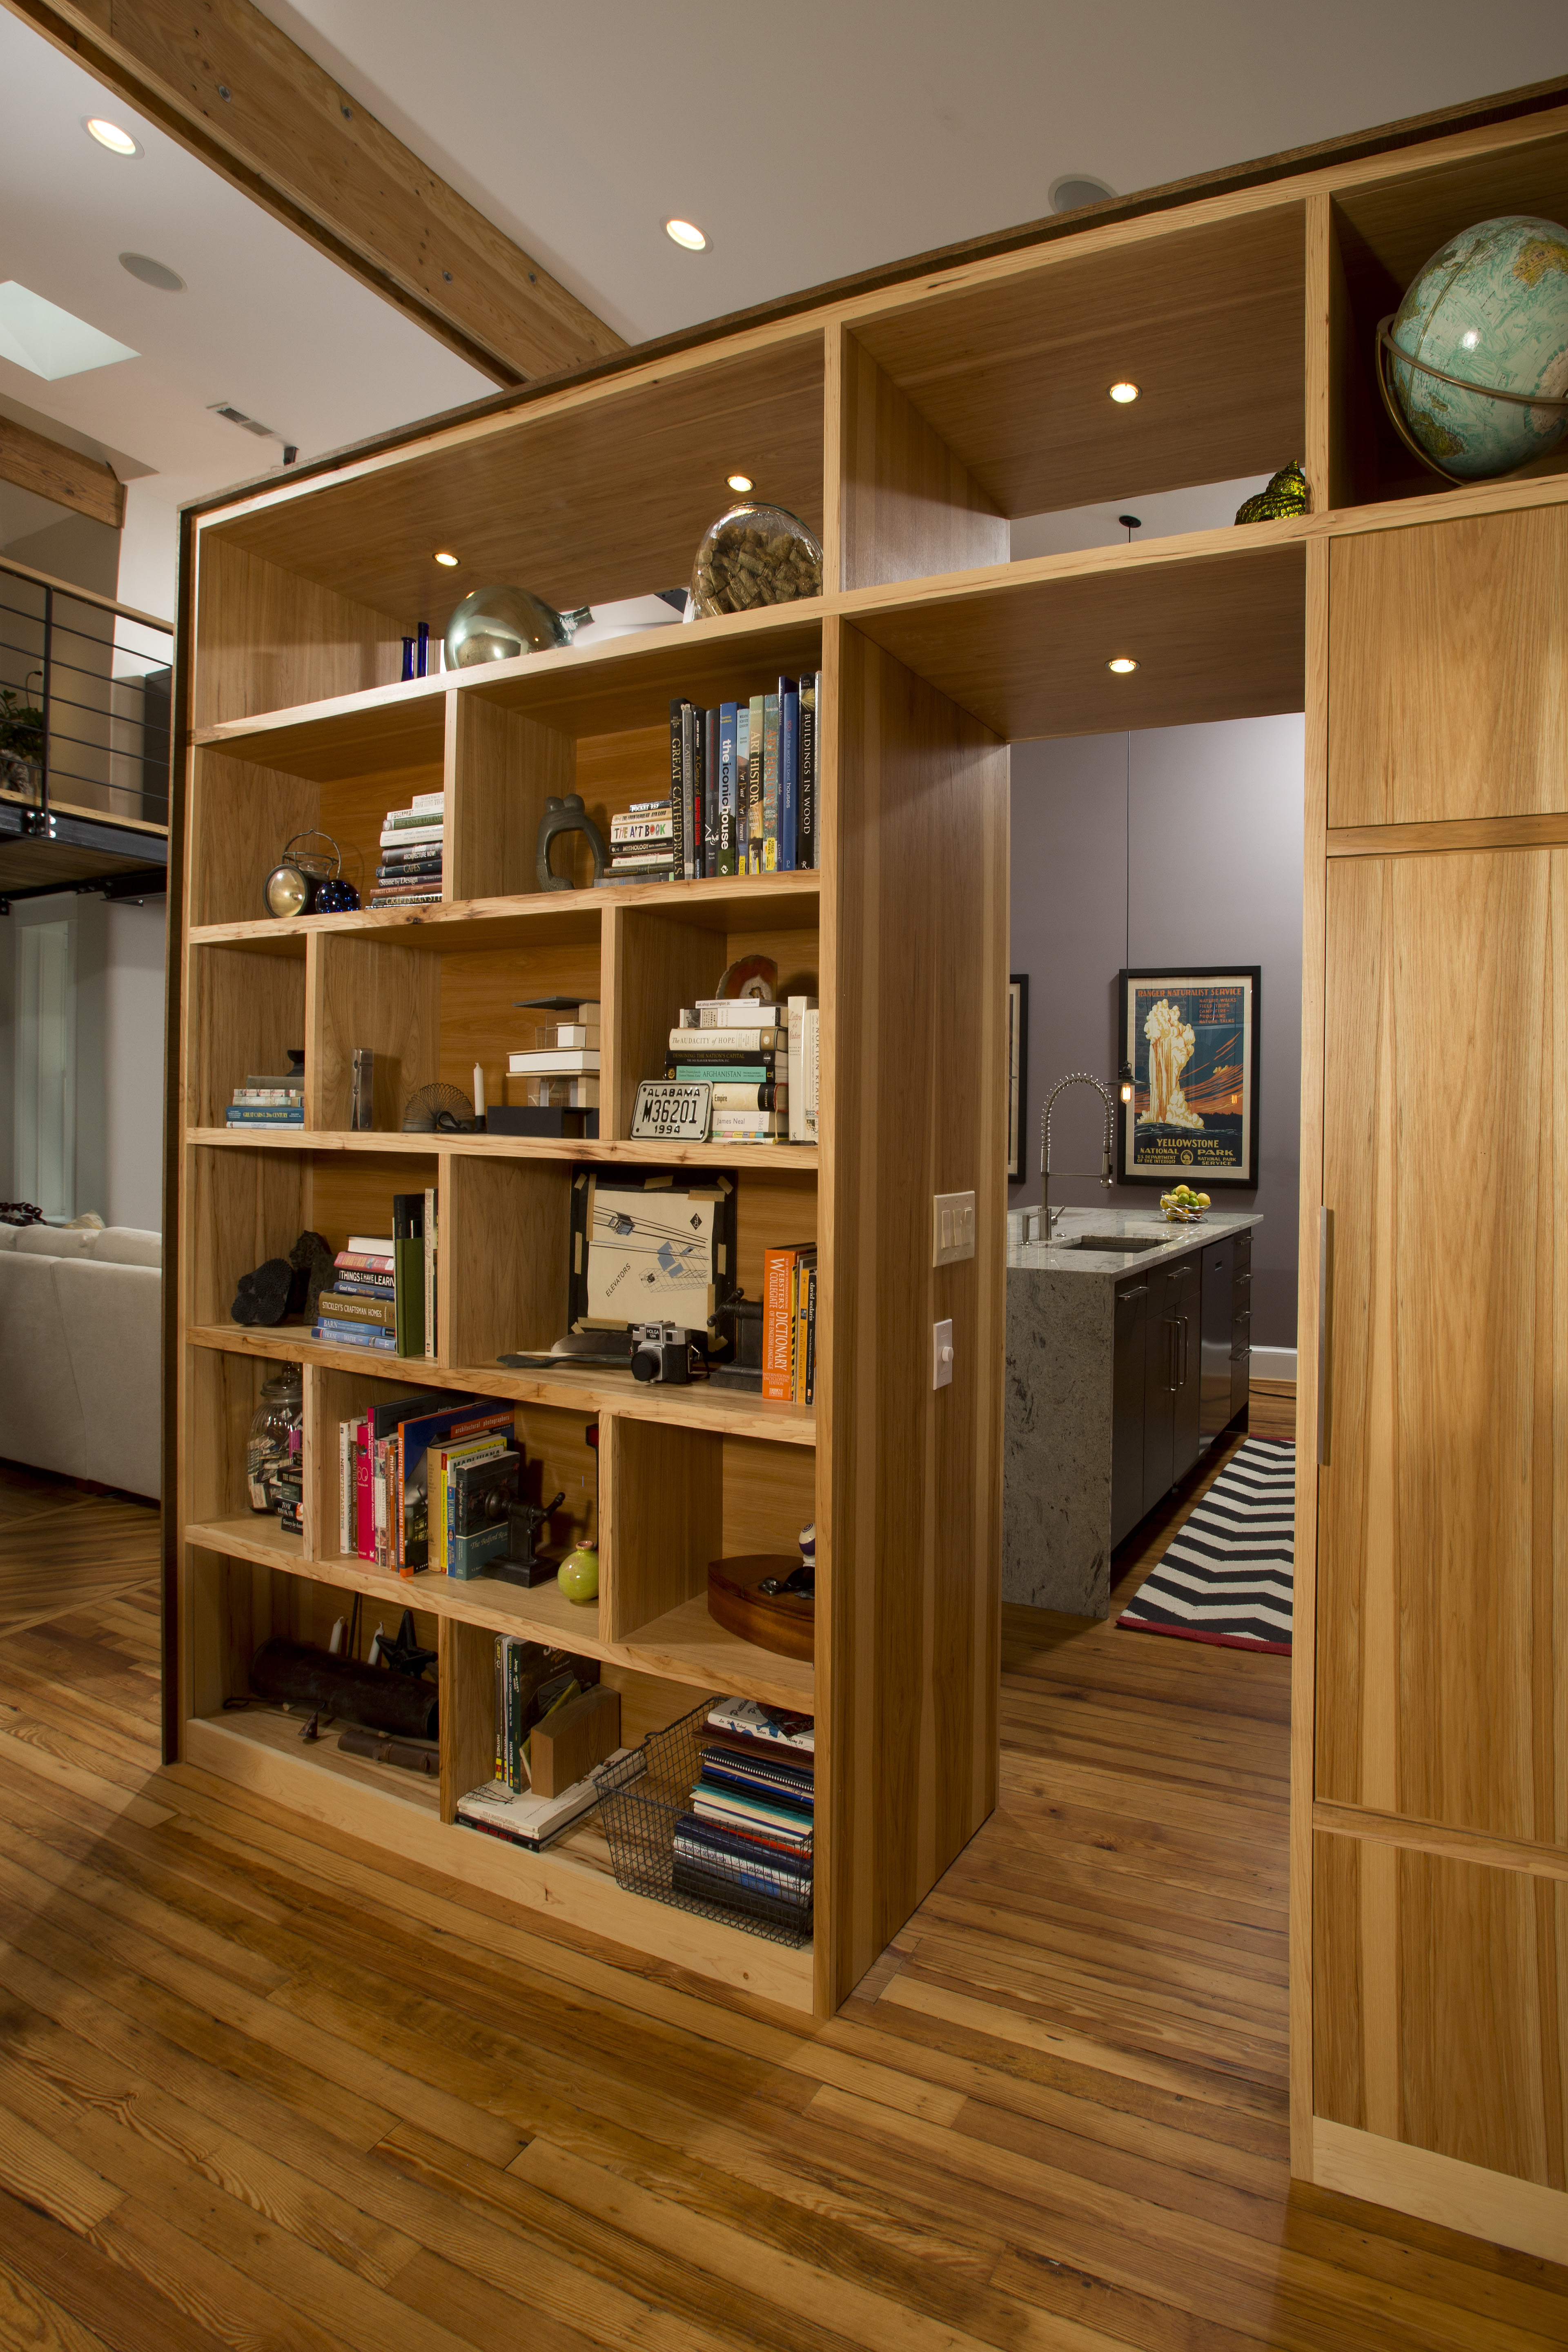 The opposite side of the shelving unit is a large bookcase with many different sized cubbies. The shelving is made out of pine similar to the original flooring.